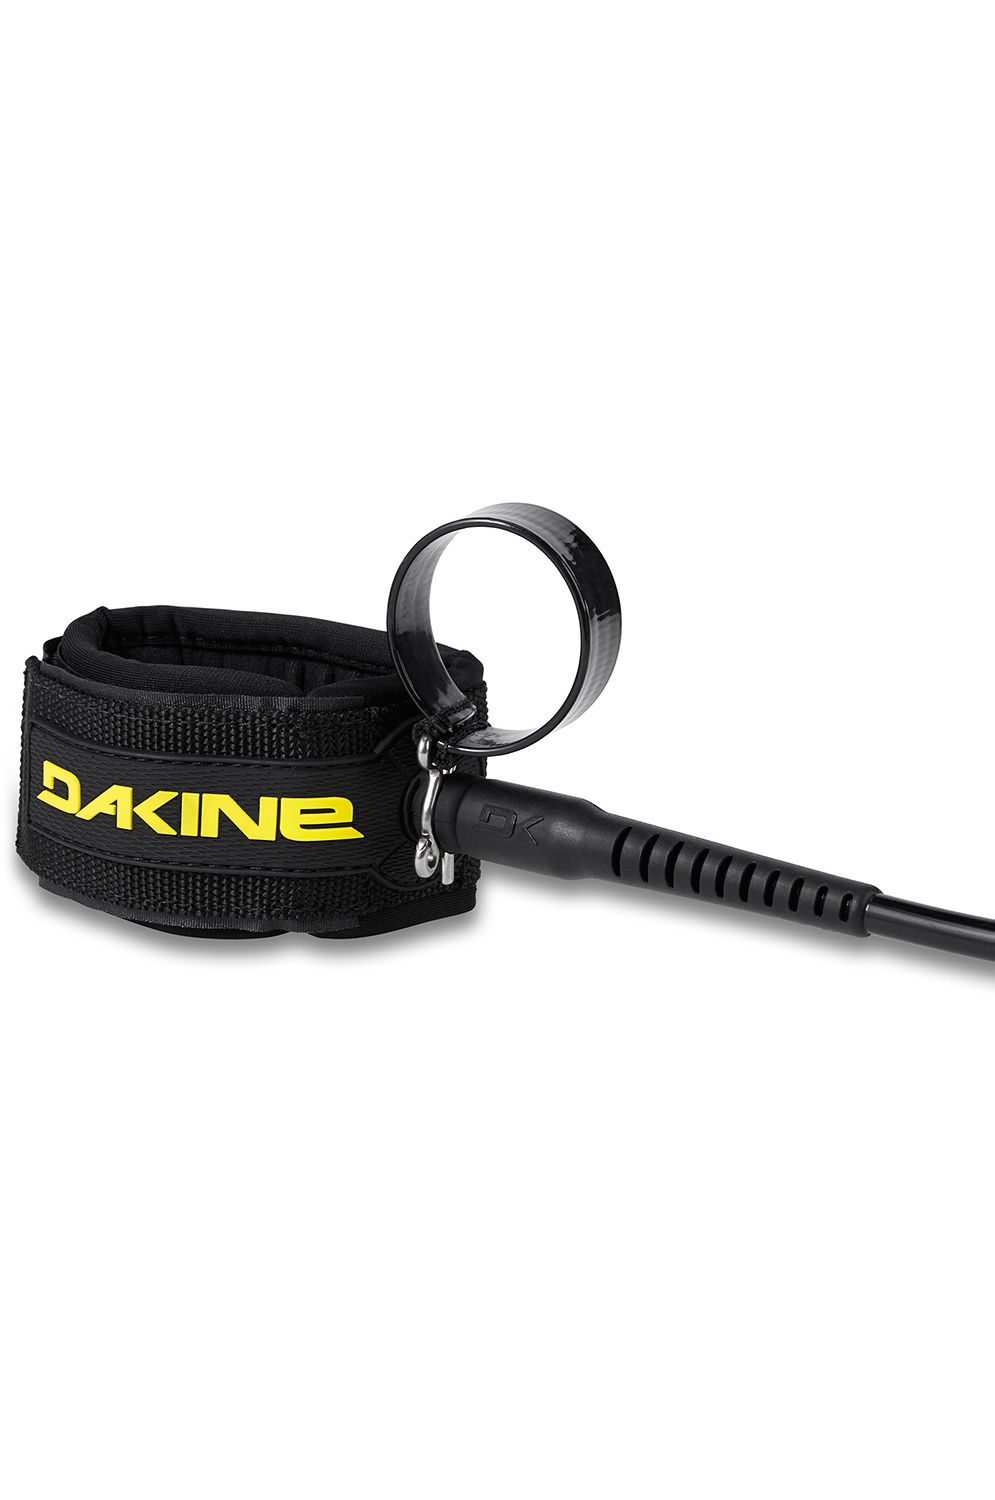 Leash Dakine KAINUI 12' x 5/16